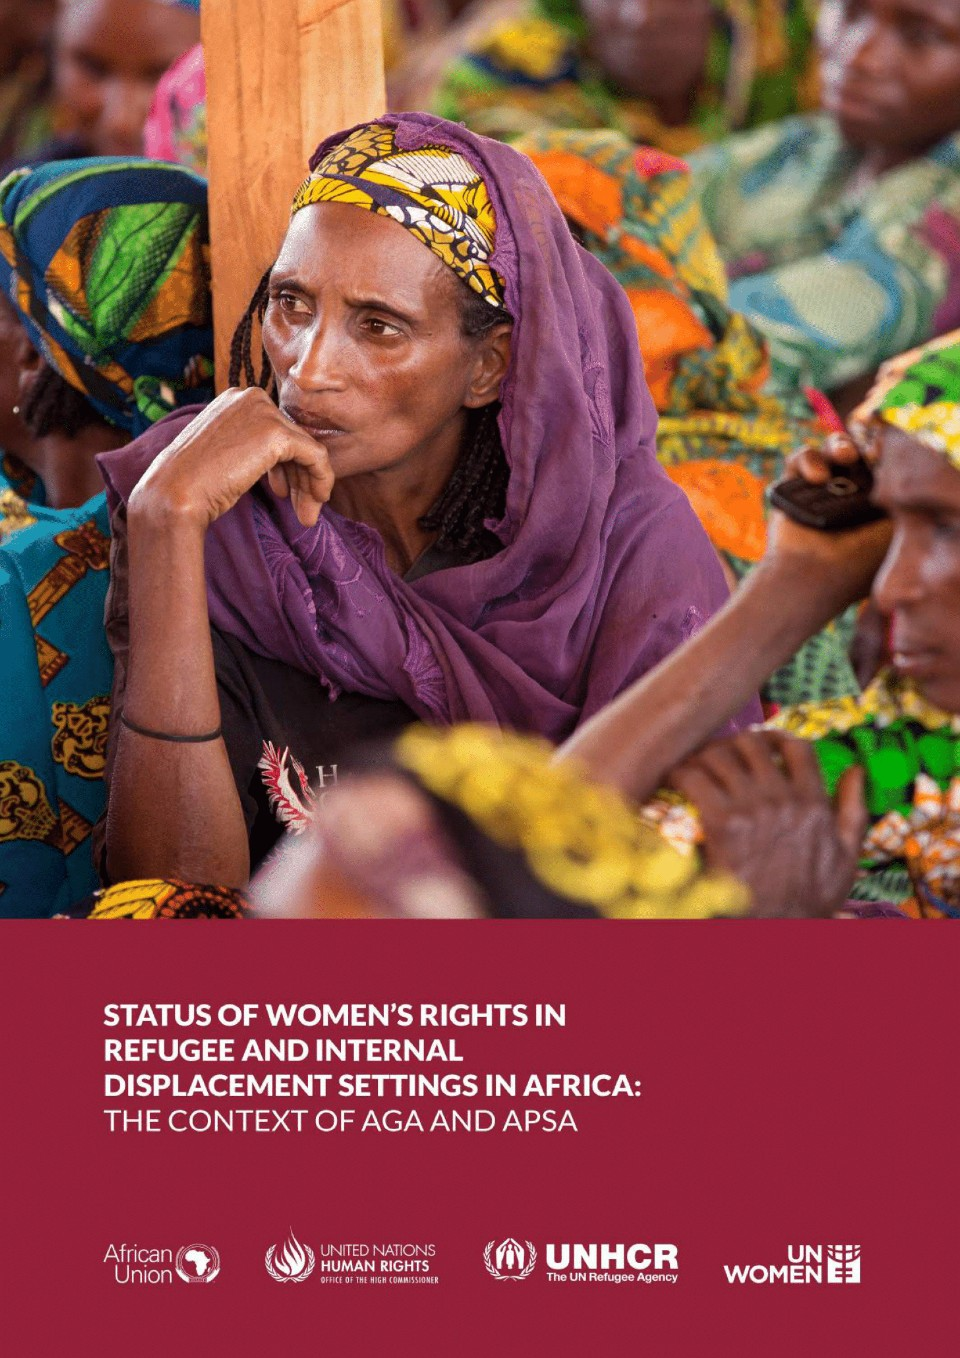 Status of Women's Rights in Refugee and Internal Displacement Settings in Africa